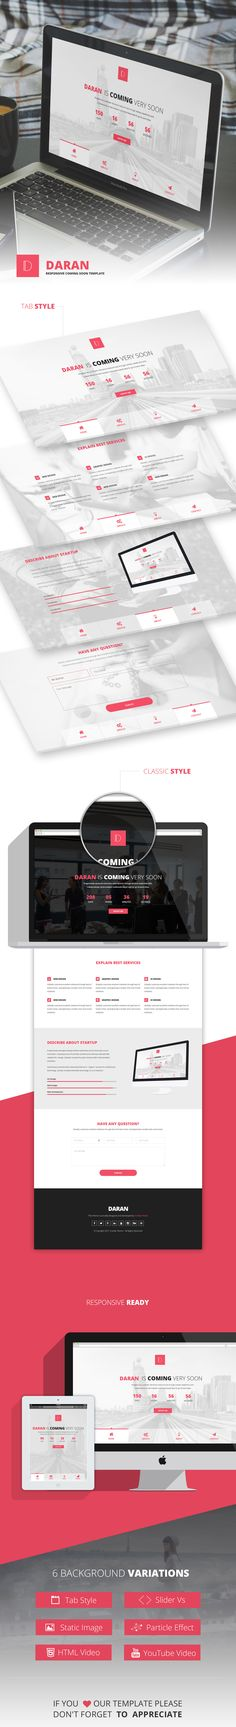 Daran is a modern, creative and minimalist Coming soon / Under construction template. It is built with latest Bootstrap framework so this template will look great on mobile devices. This template c...